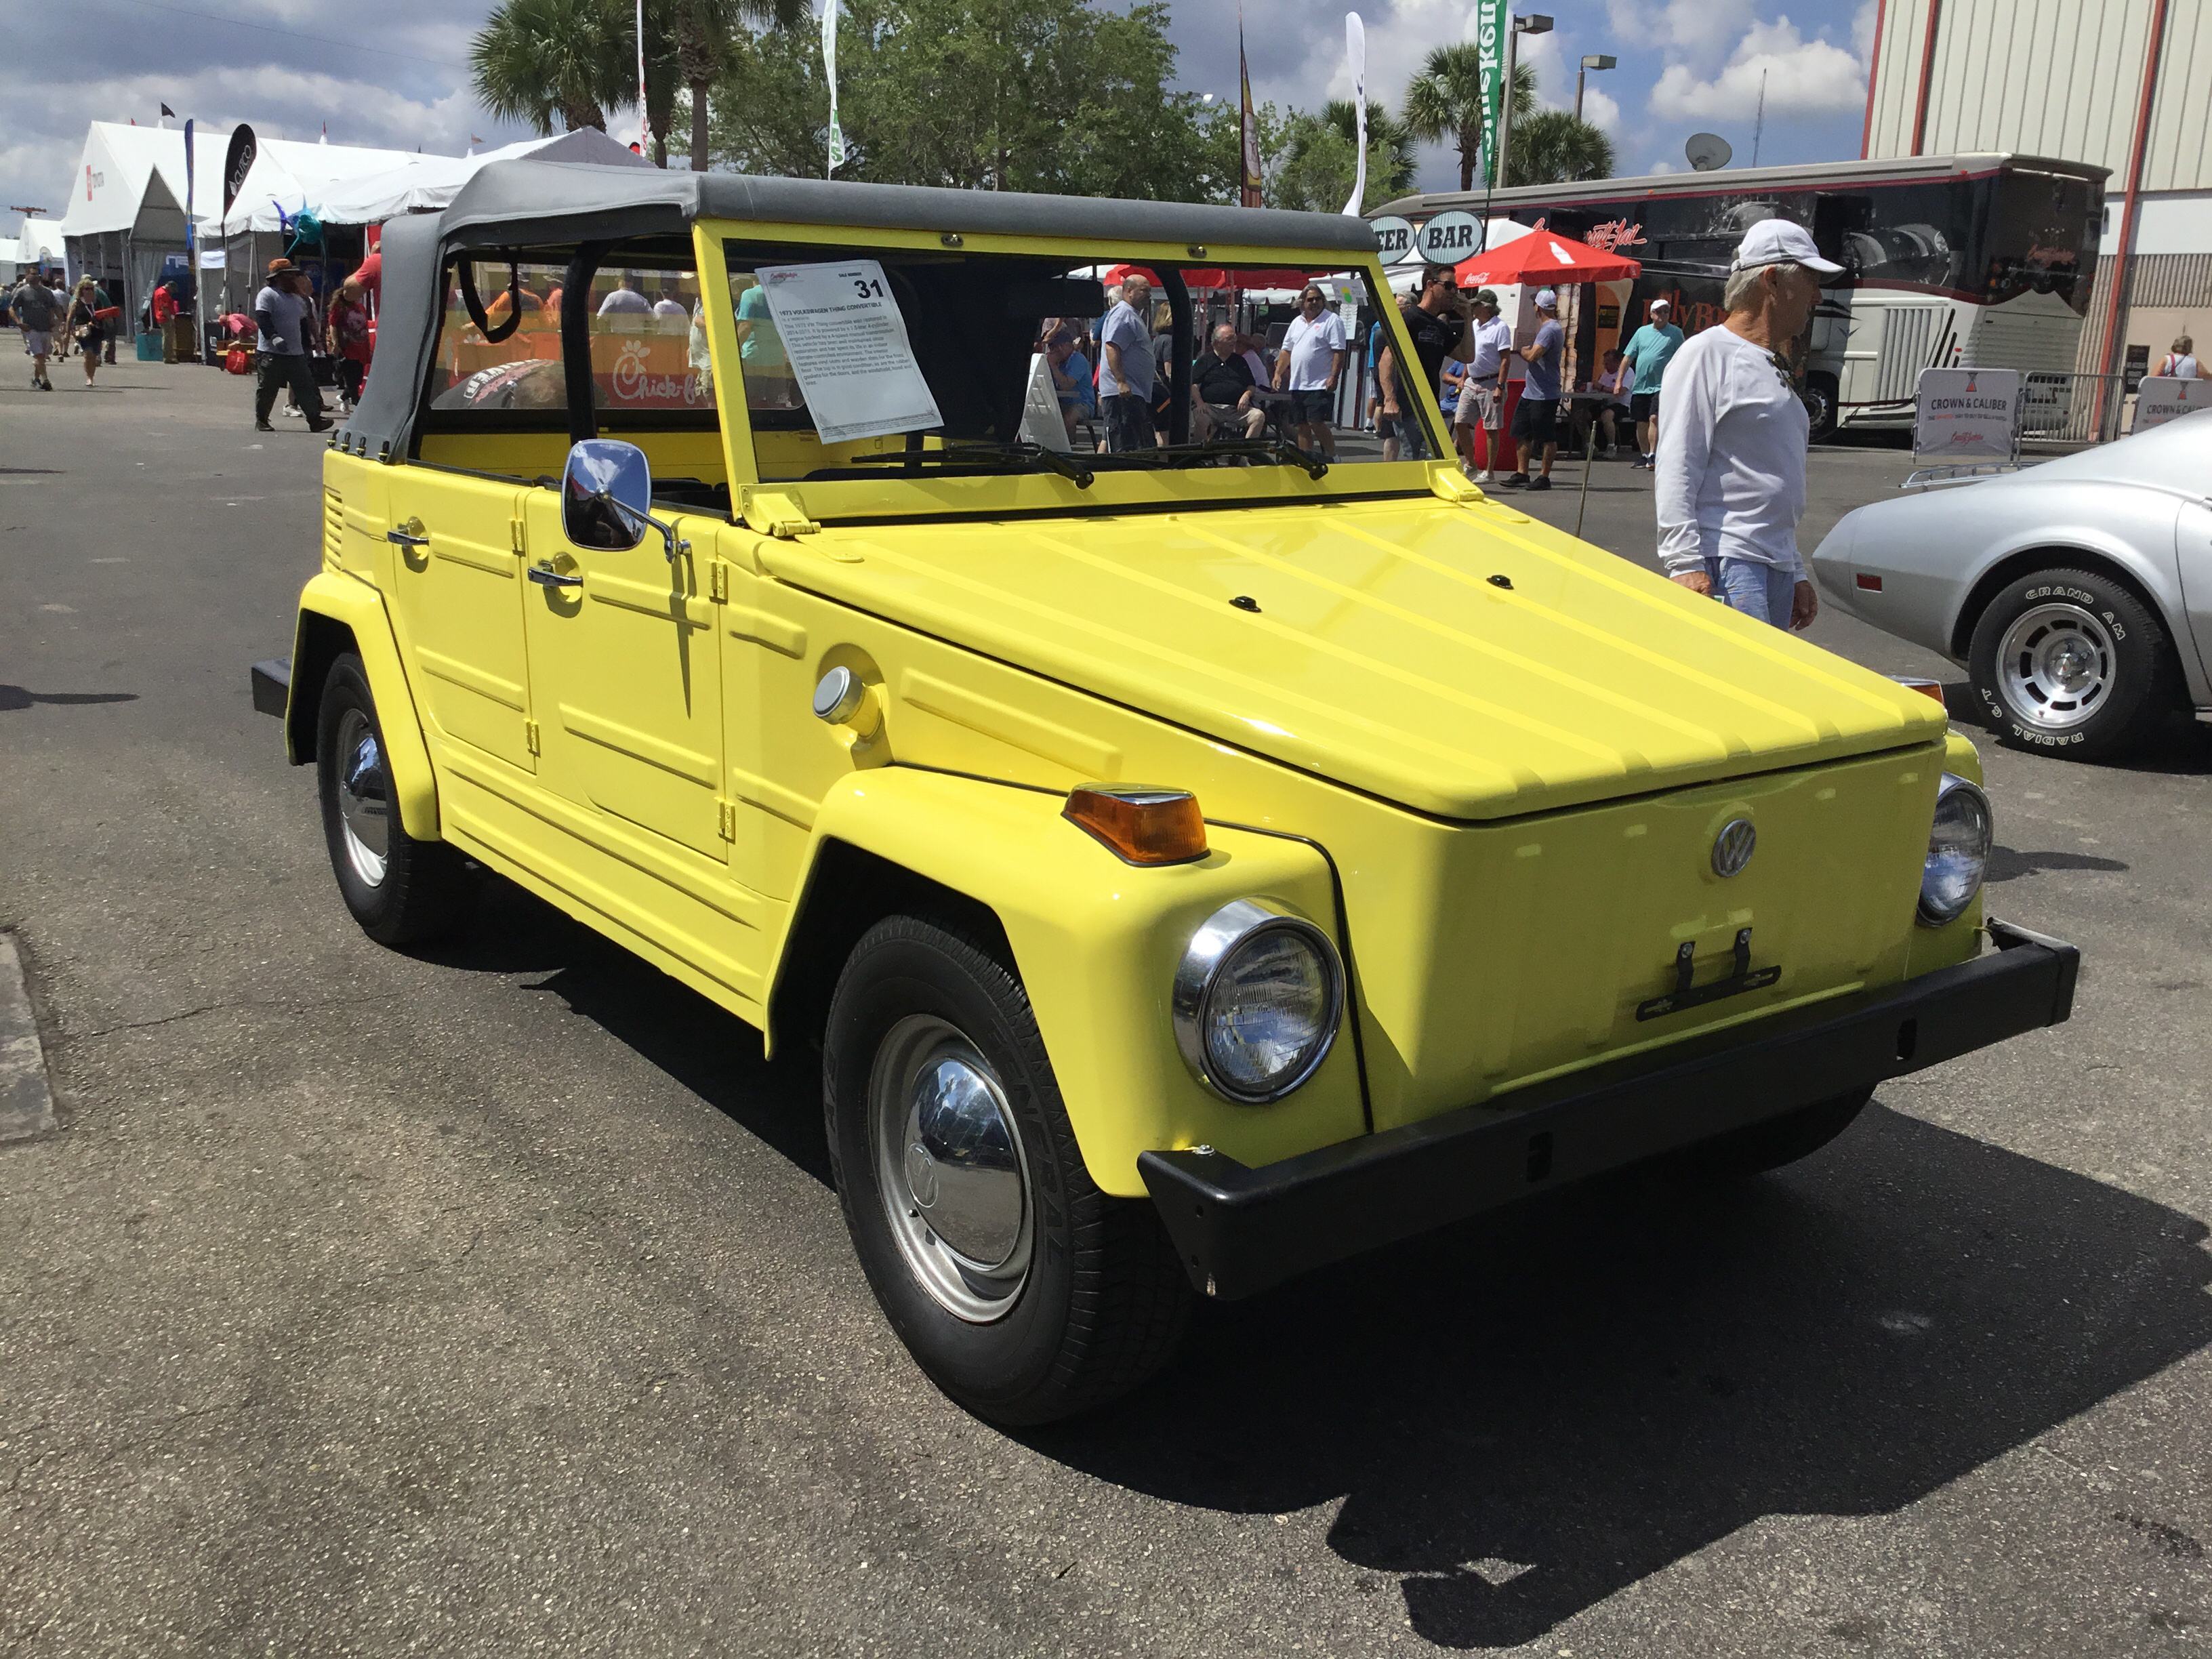 1972 Volkswagen 181 Thing Values | Hagerty Valuation Tool®